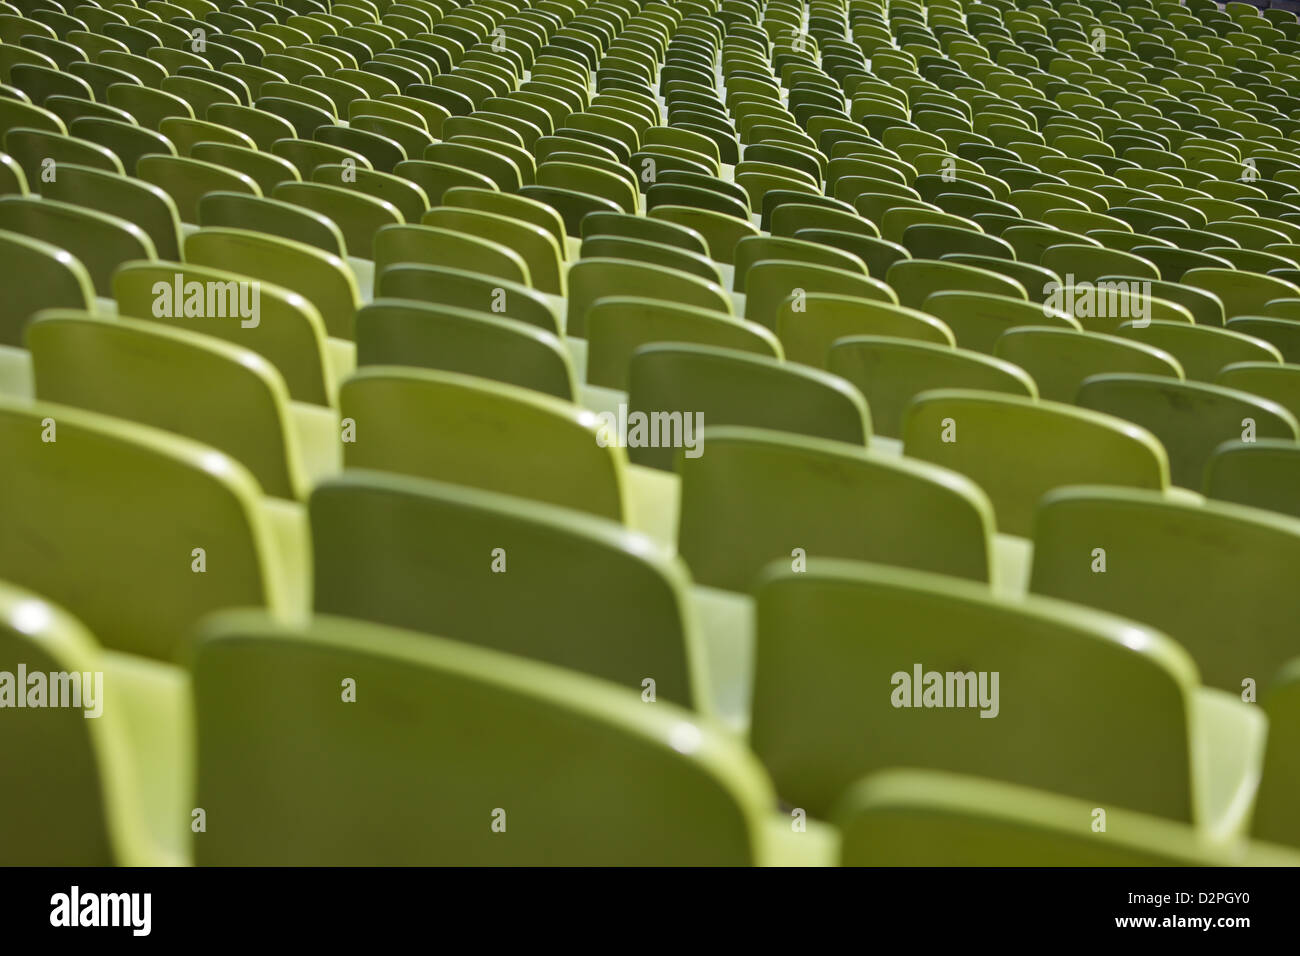 Munich, Germany, Olympiastadion rows of seats in the Olympic Park - Stock Image